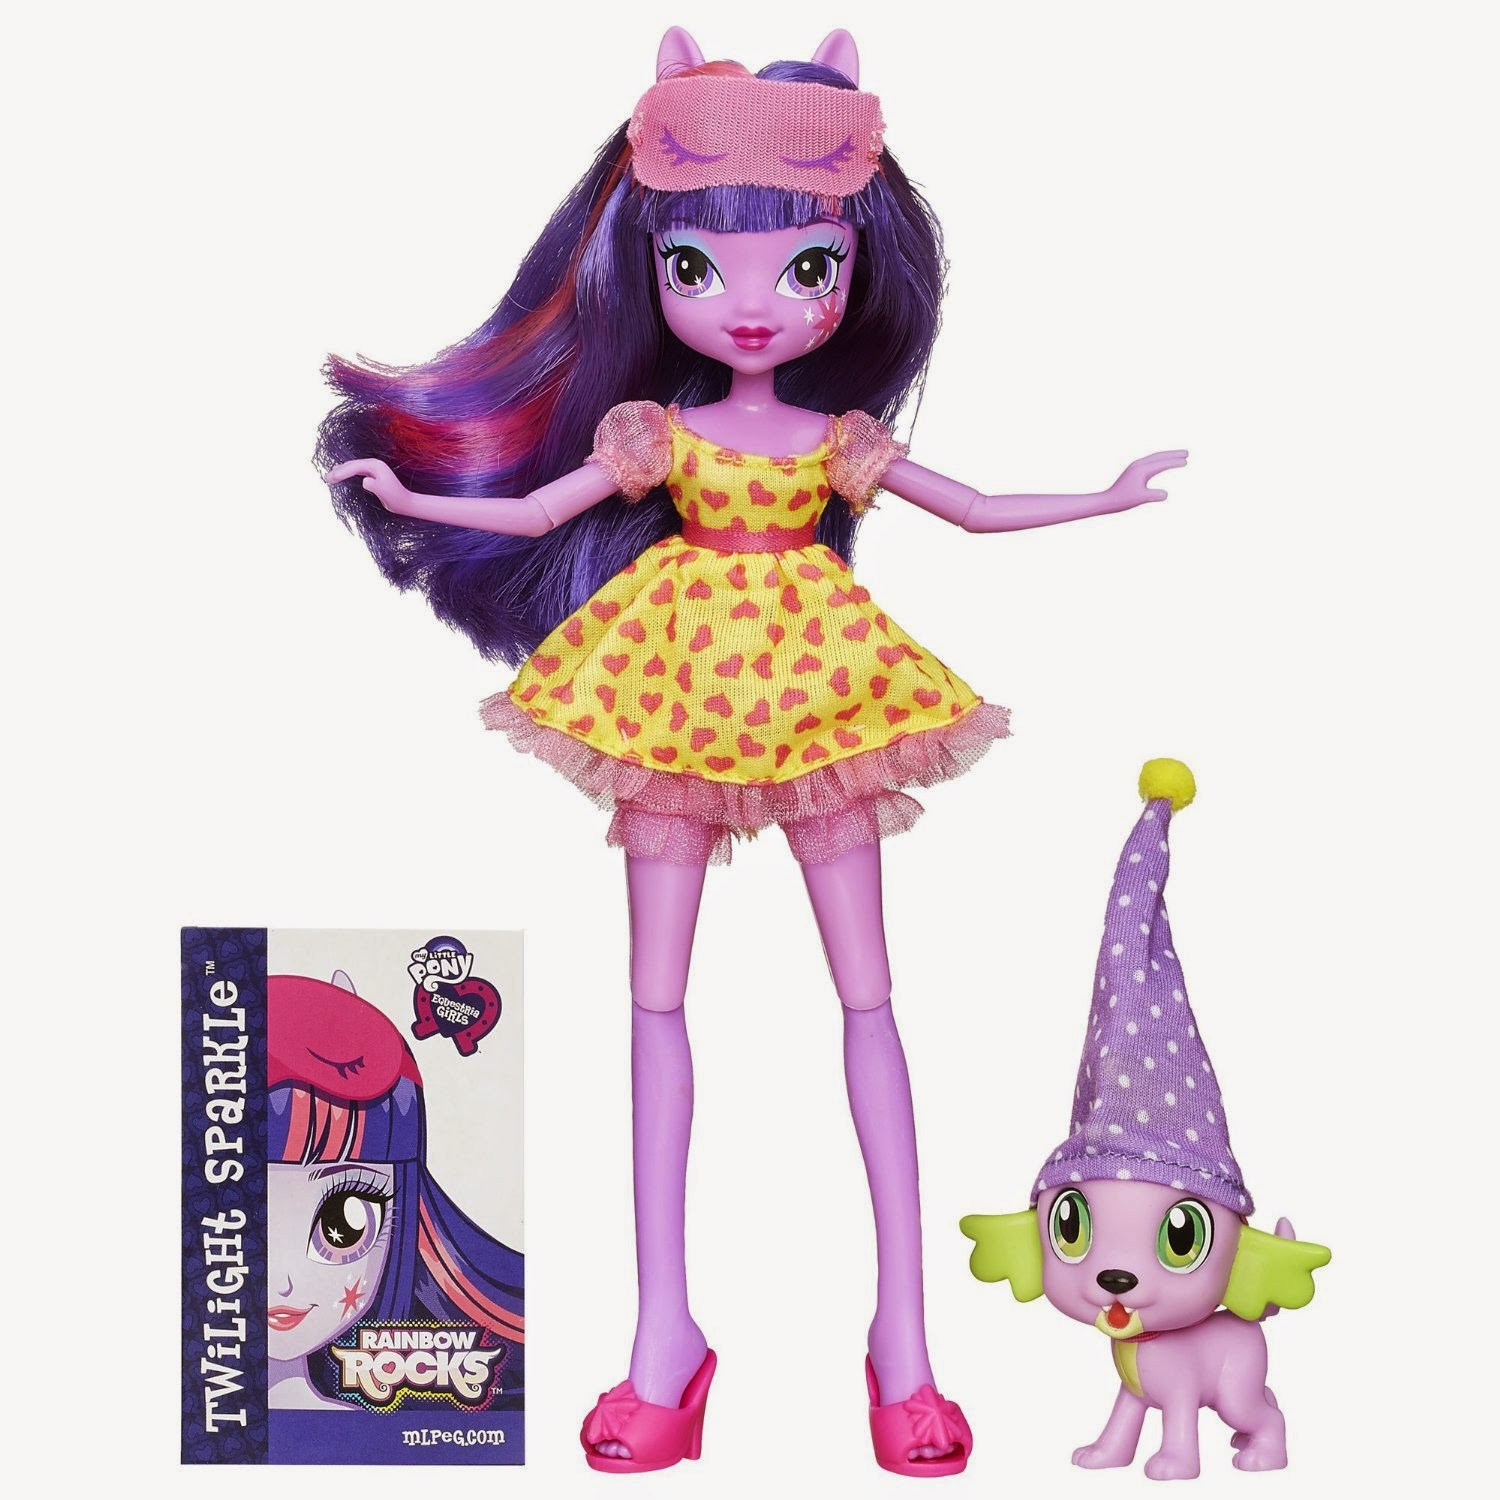 Twilight Sparkle and Spike the Puppy Equestria Girls Set